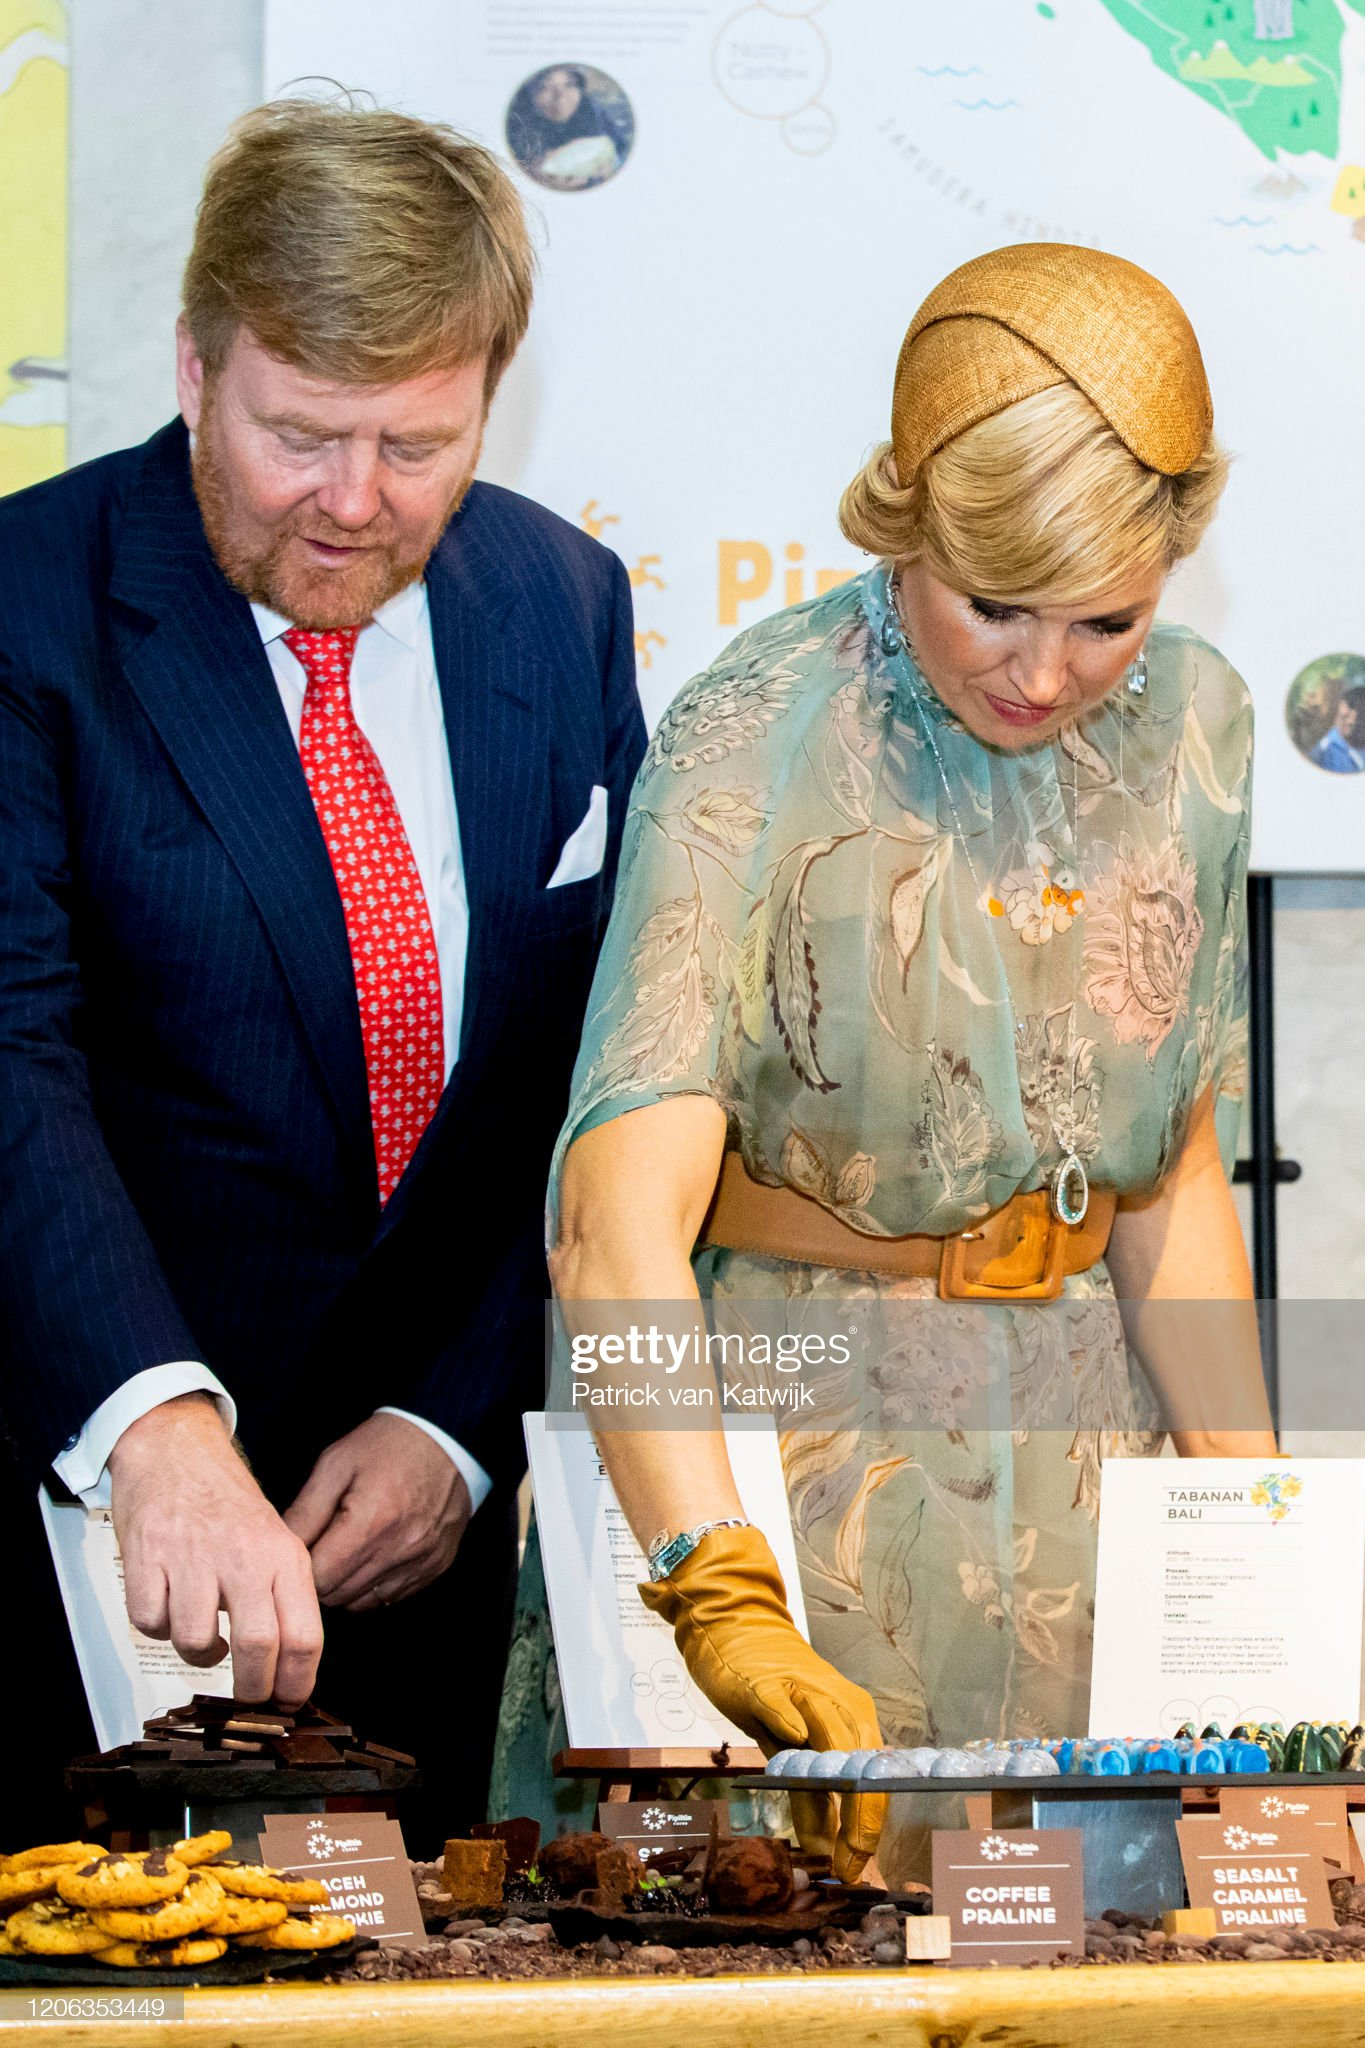 https://media.gettyimages.com/photos/king-willemalexander-of-the-netherlands-and-queen-maxima-of-the-picture-id1206353449?s=2048x2048